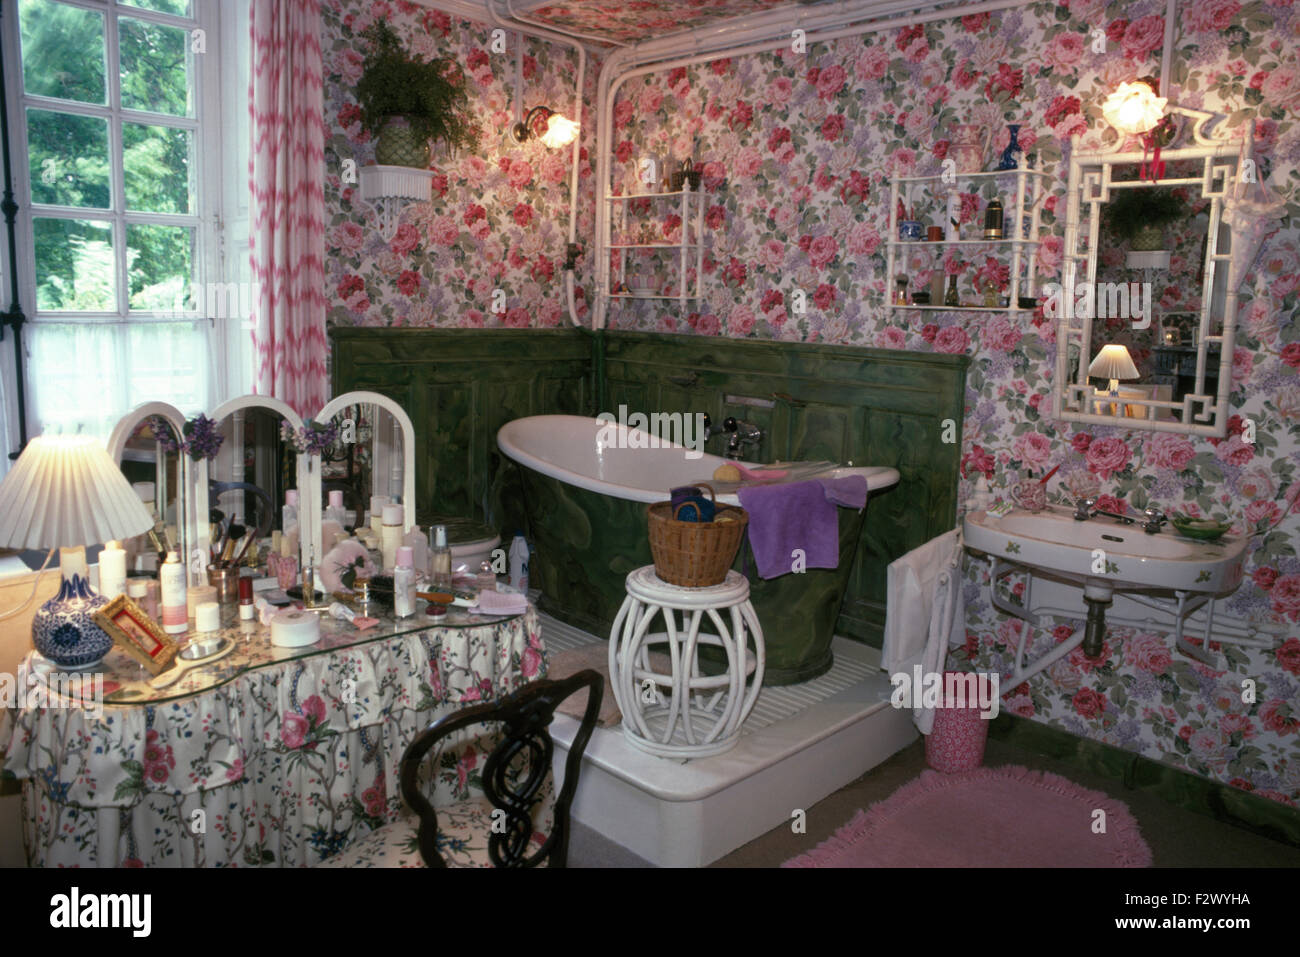 Slipper bath on small platform in corner of eighties bathroom with rose patterned wallpaper Stock Photo